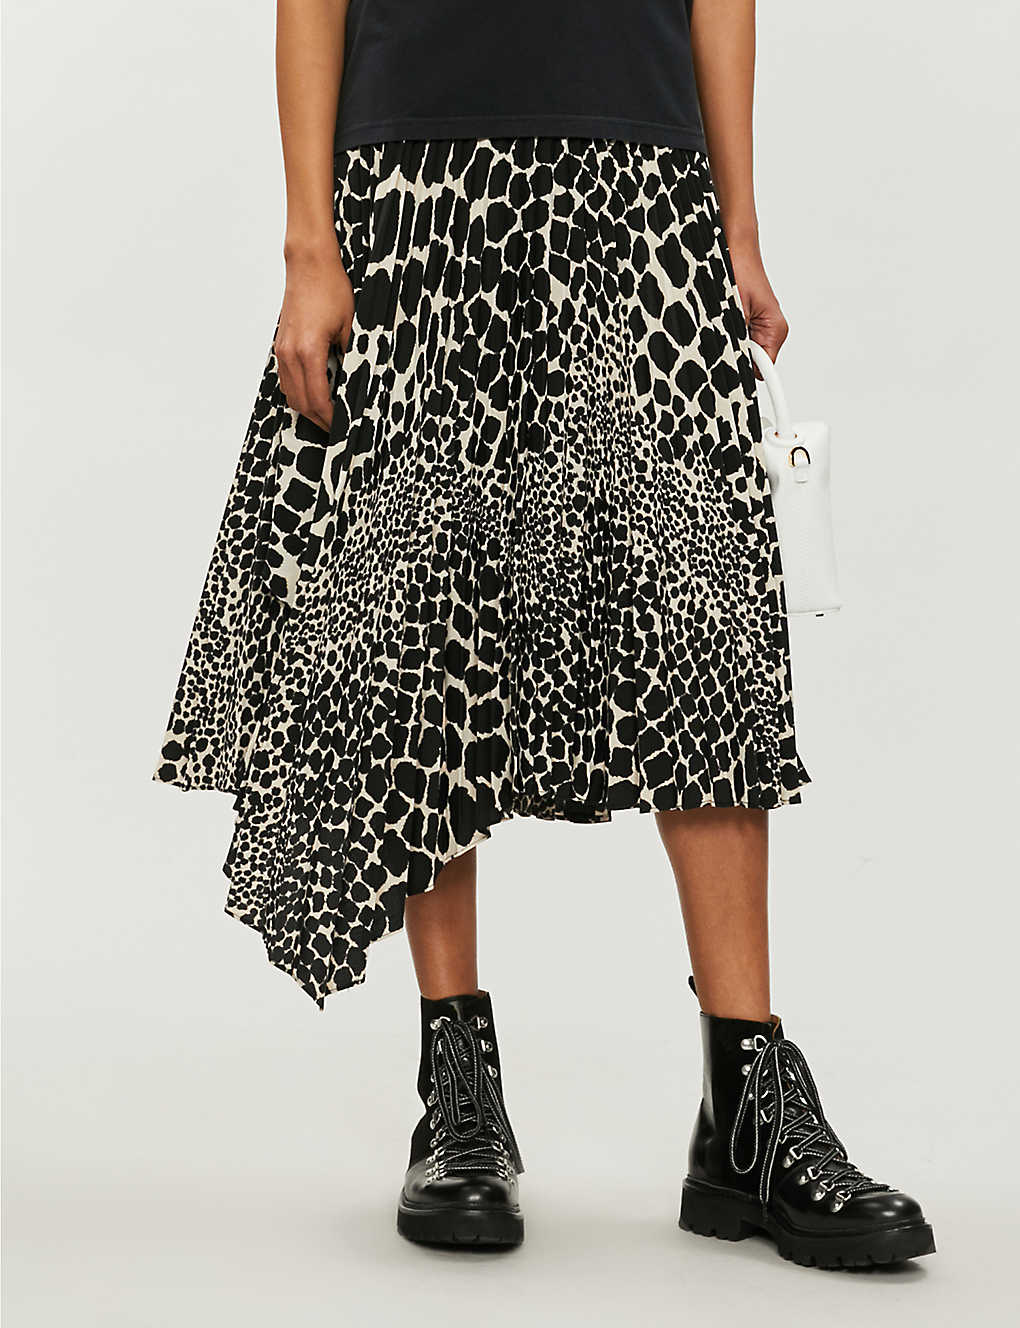 49454eb45be2 TOPSHOP - Giraffe-print pleated asymmetric skirt | Selfridges.com